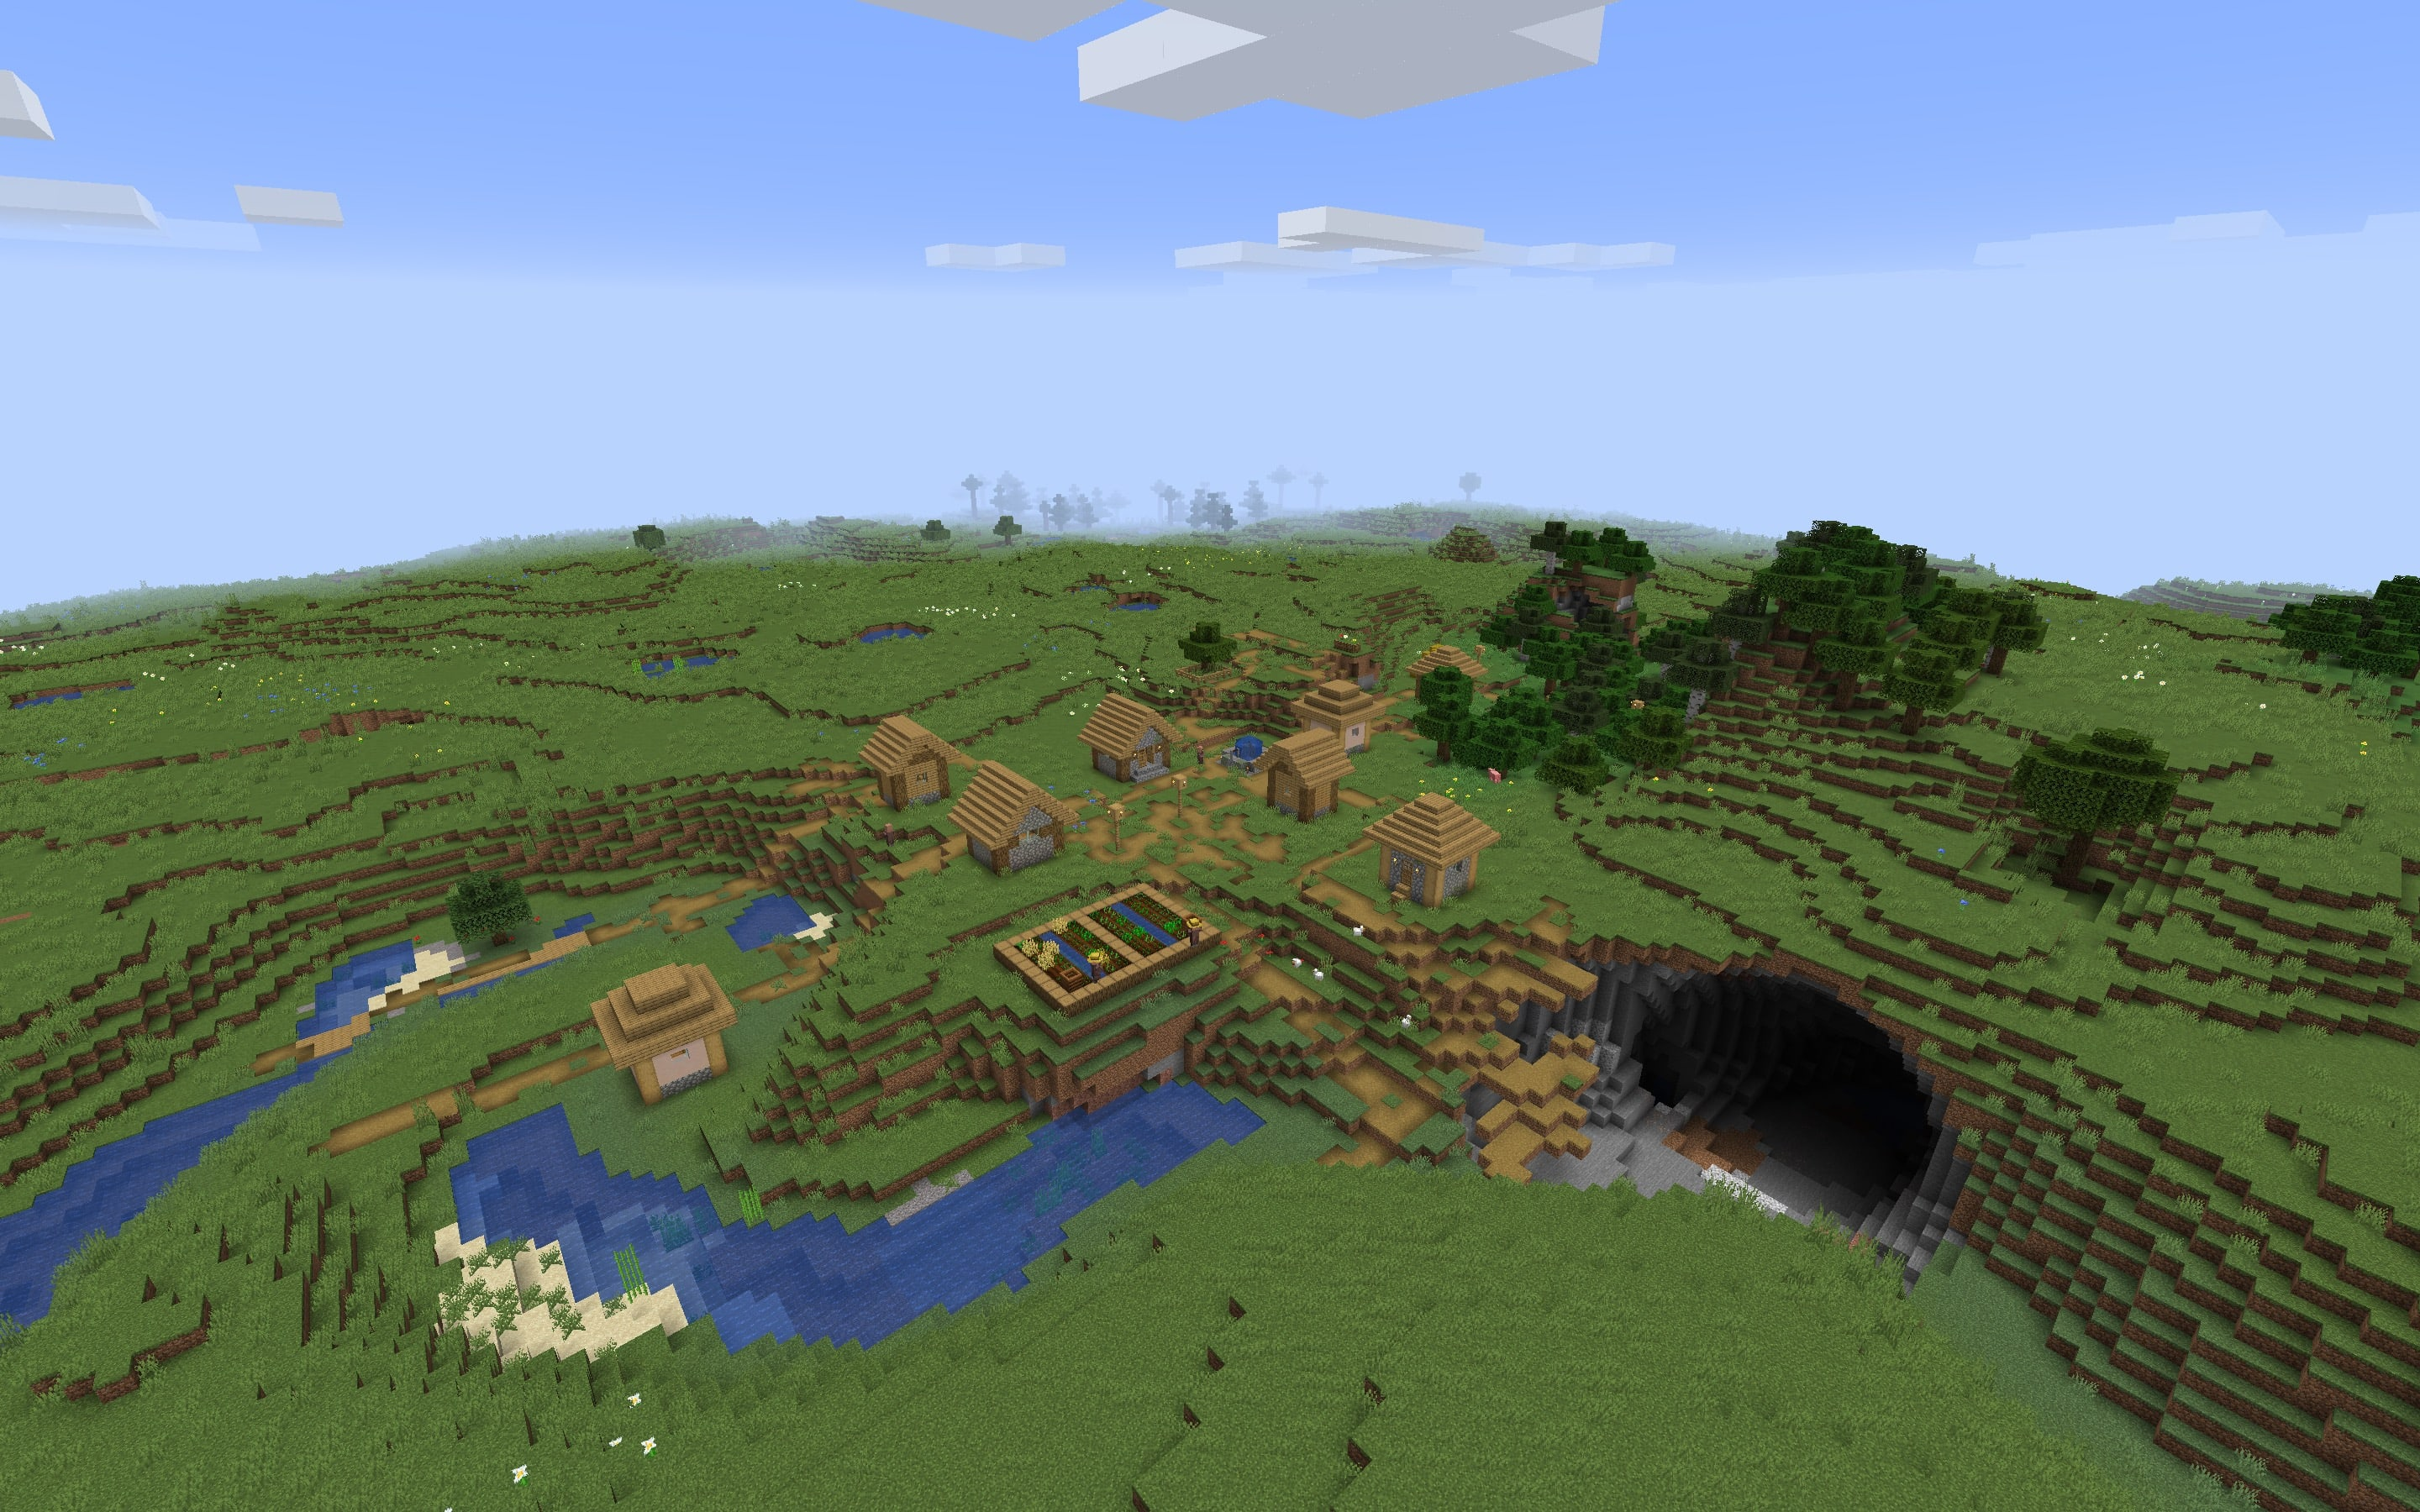 Minecraft Seed - Meteor Strike Village